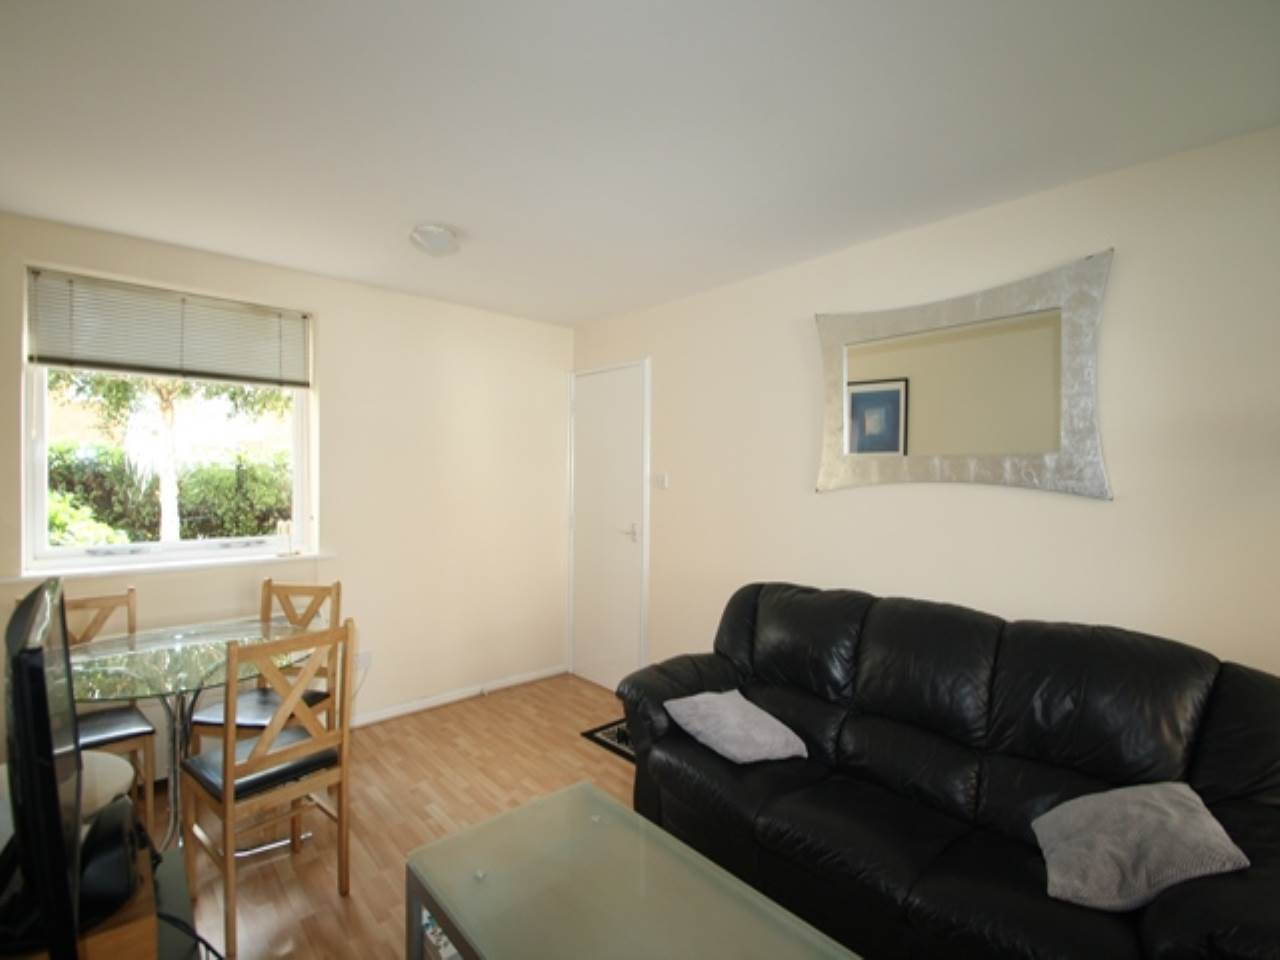 1 bed flat to rent, E16